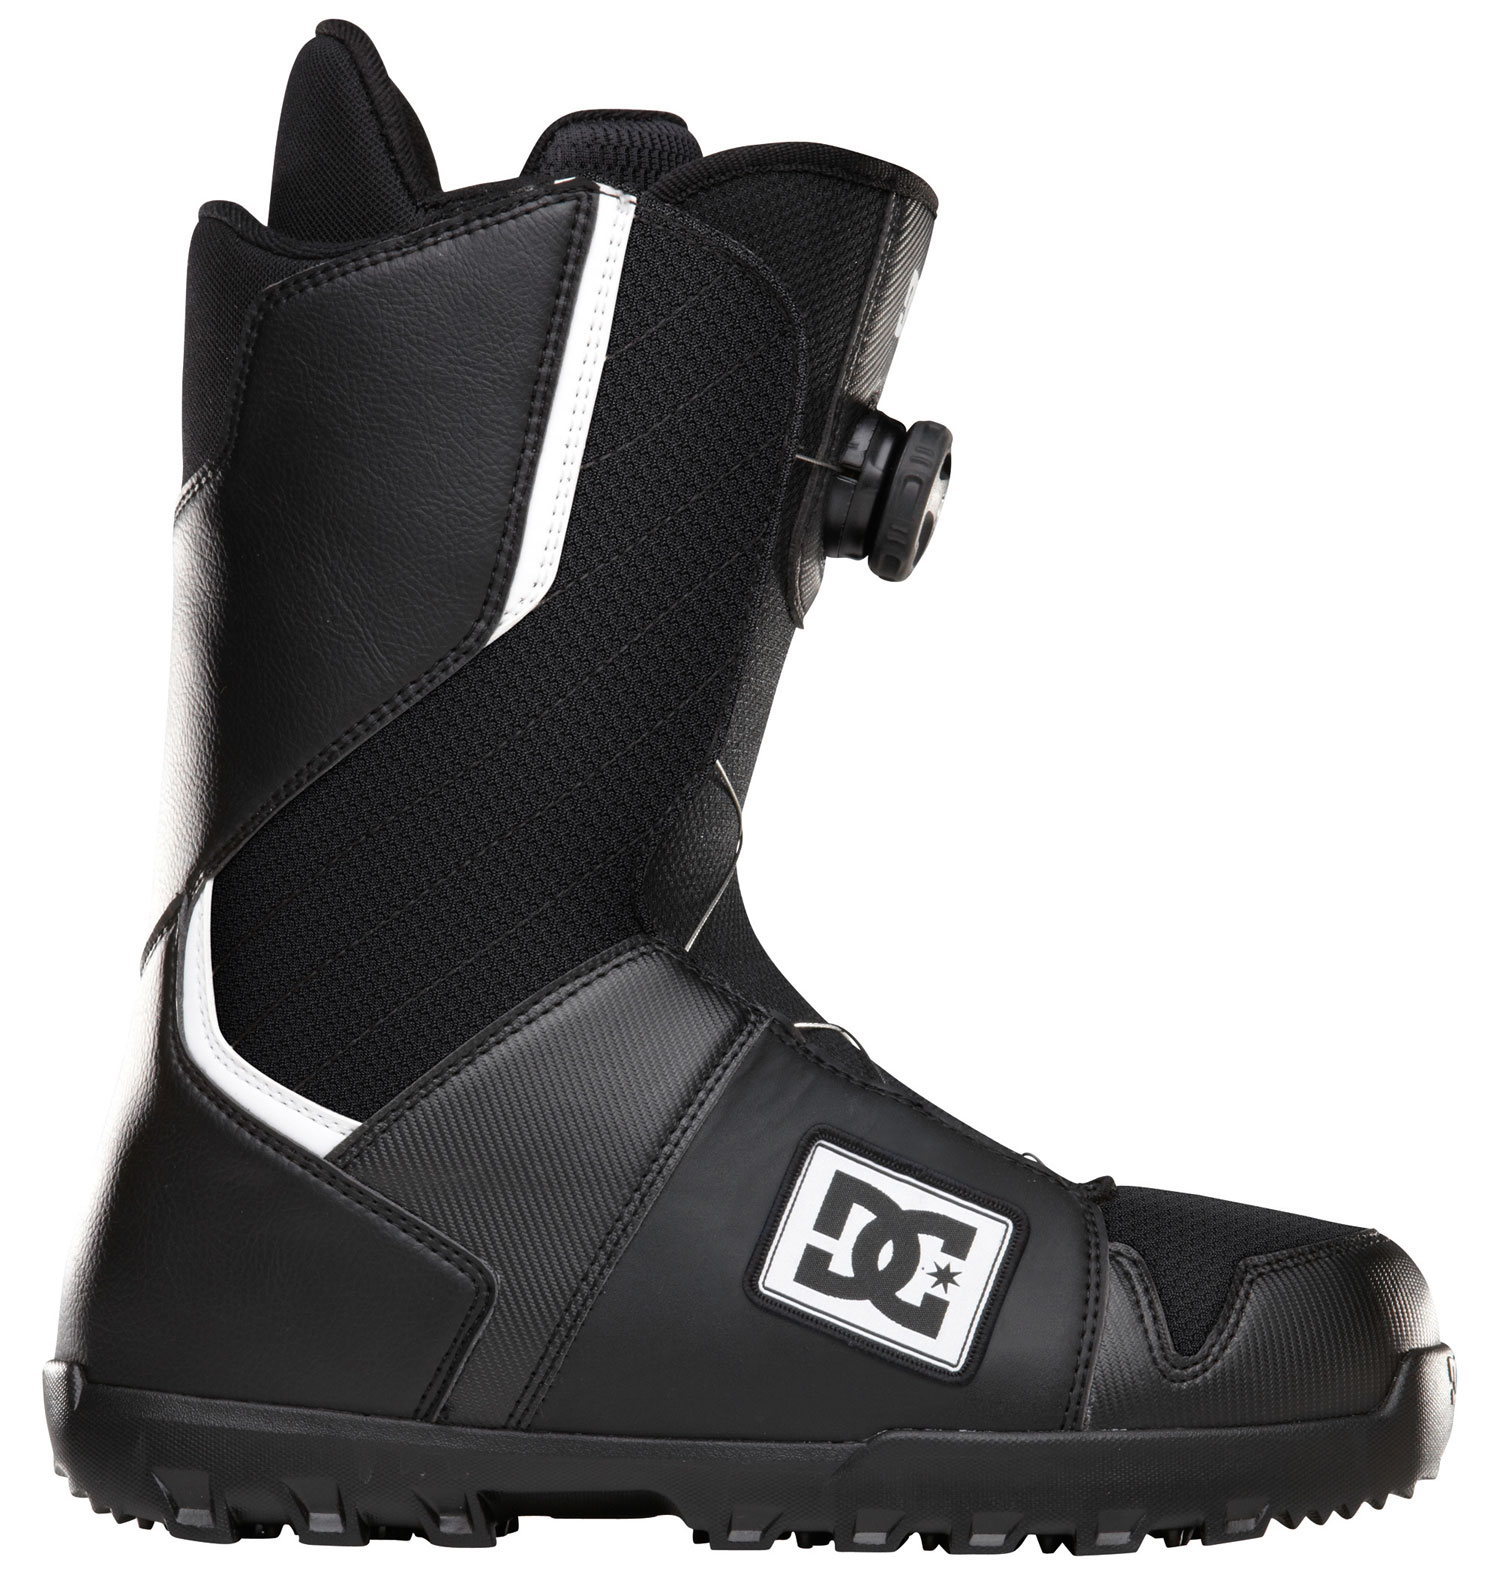 Snowboard Out of the box comfort and fit has made the scout one of dc's most popular boots!Key Features of the DC Scout Snowboard Boots: Flex: 5 Boa® Coiler UniLite™: DC's proprietary outsole technology, UnILIte provides traction, durability, dampening, and cushioning all while drastically reducing weight. UnILIte soles feature distinct traction patterns for ascending, descending, and skating around with our Push Zone tread pattern. the snow-shedding traction designs also prevent snow from building up and clogging bindings. Command Liner: multi density zones, aegis, lace closure, anatomical J-bars - $134.95